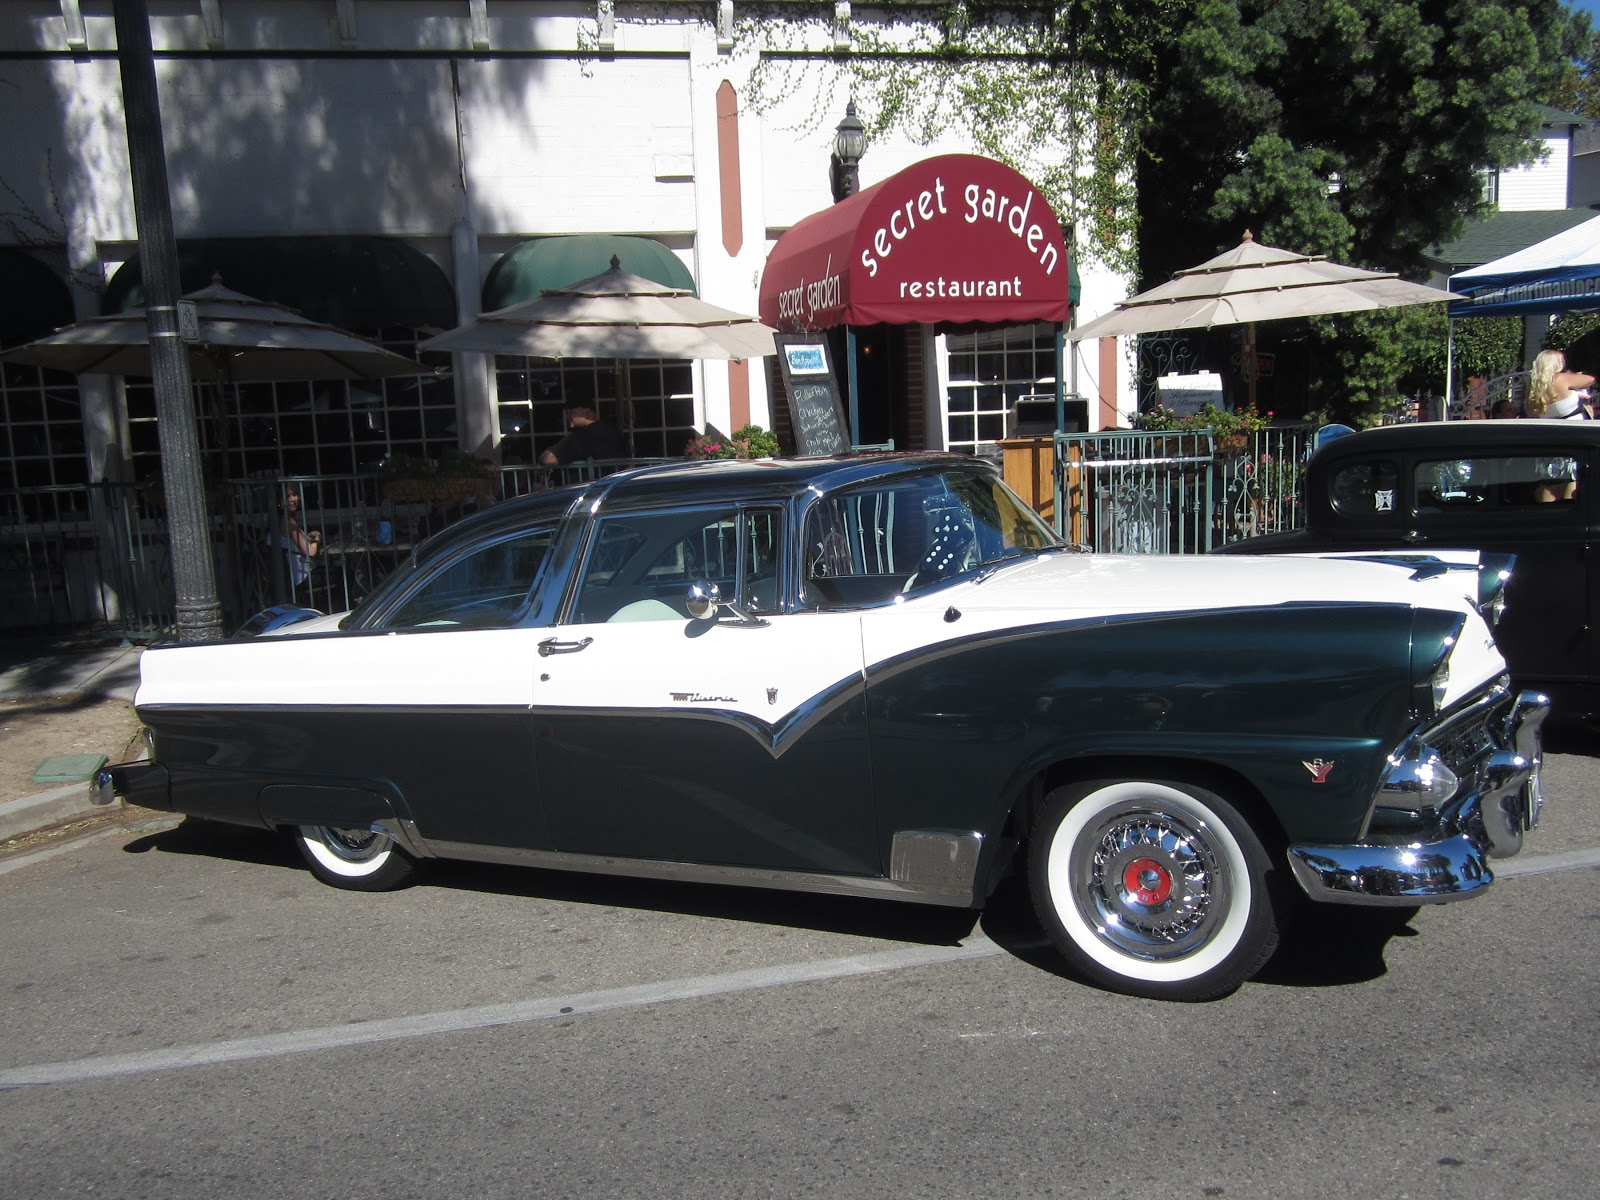 Covering Classic Cars : Roamin\' Relics Car Show in Moorpark, Ca